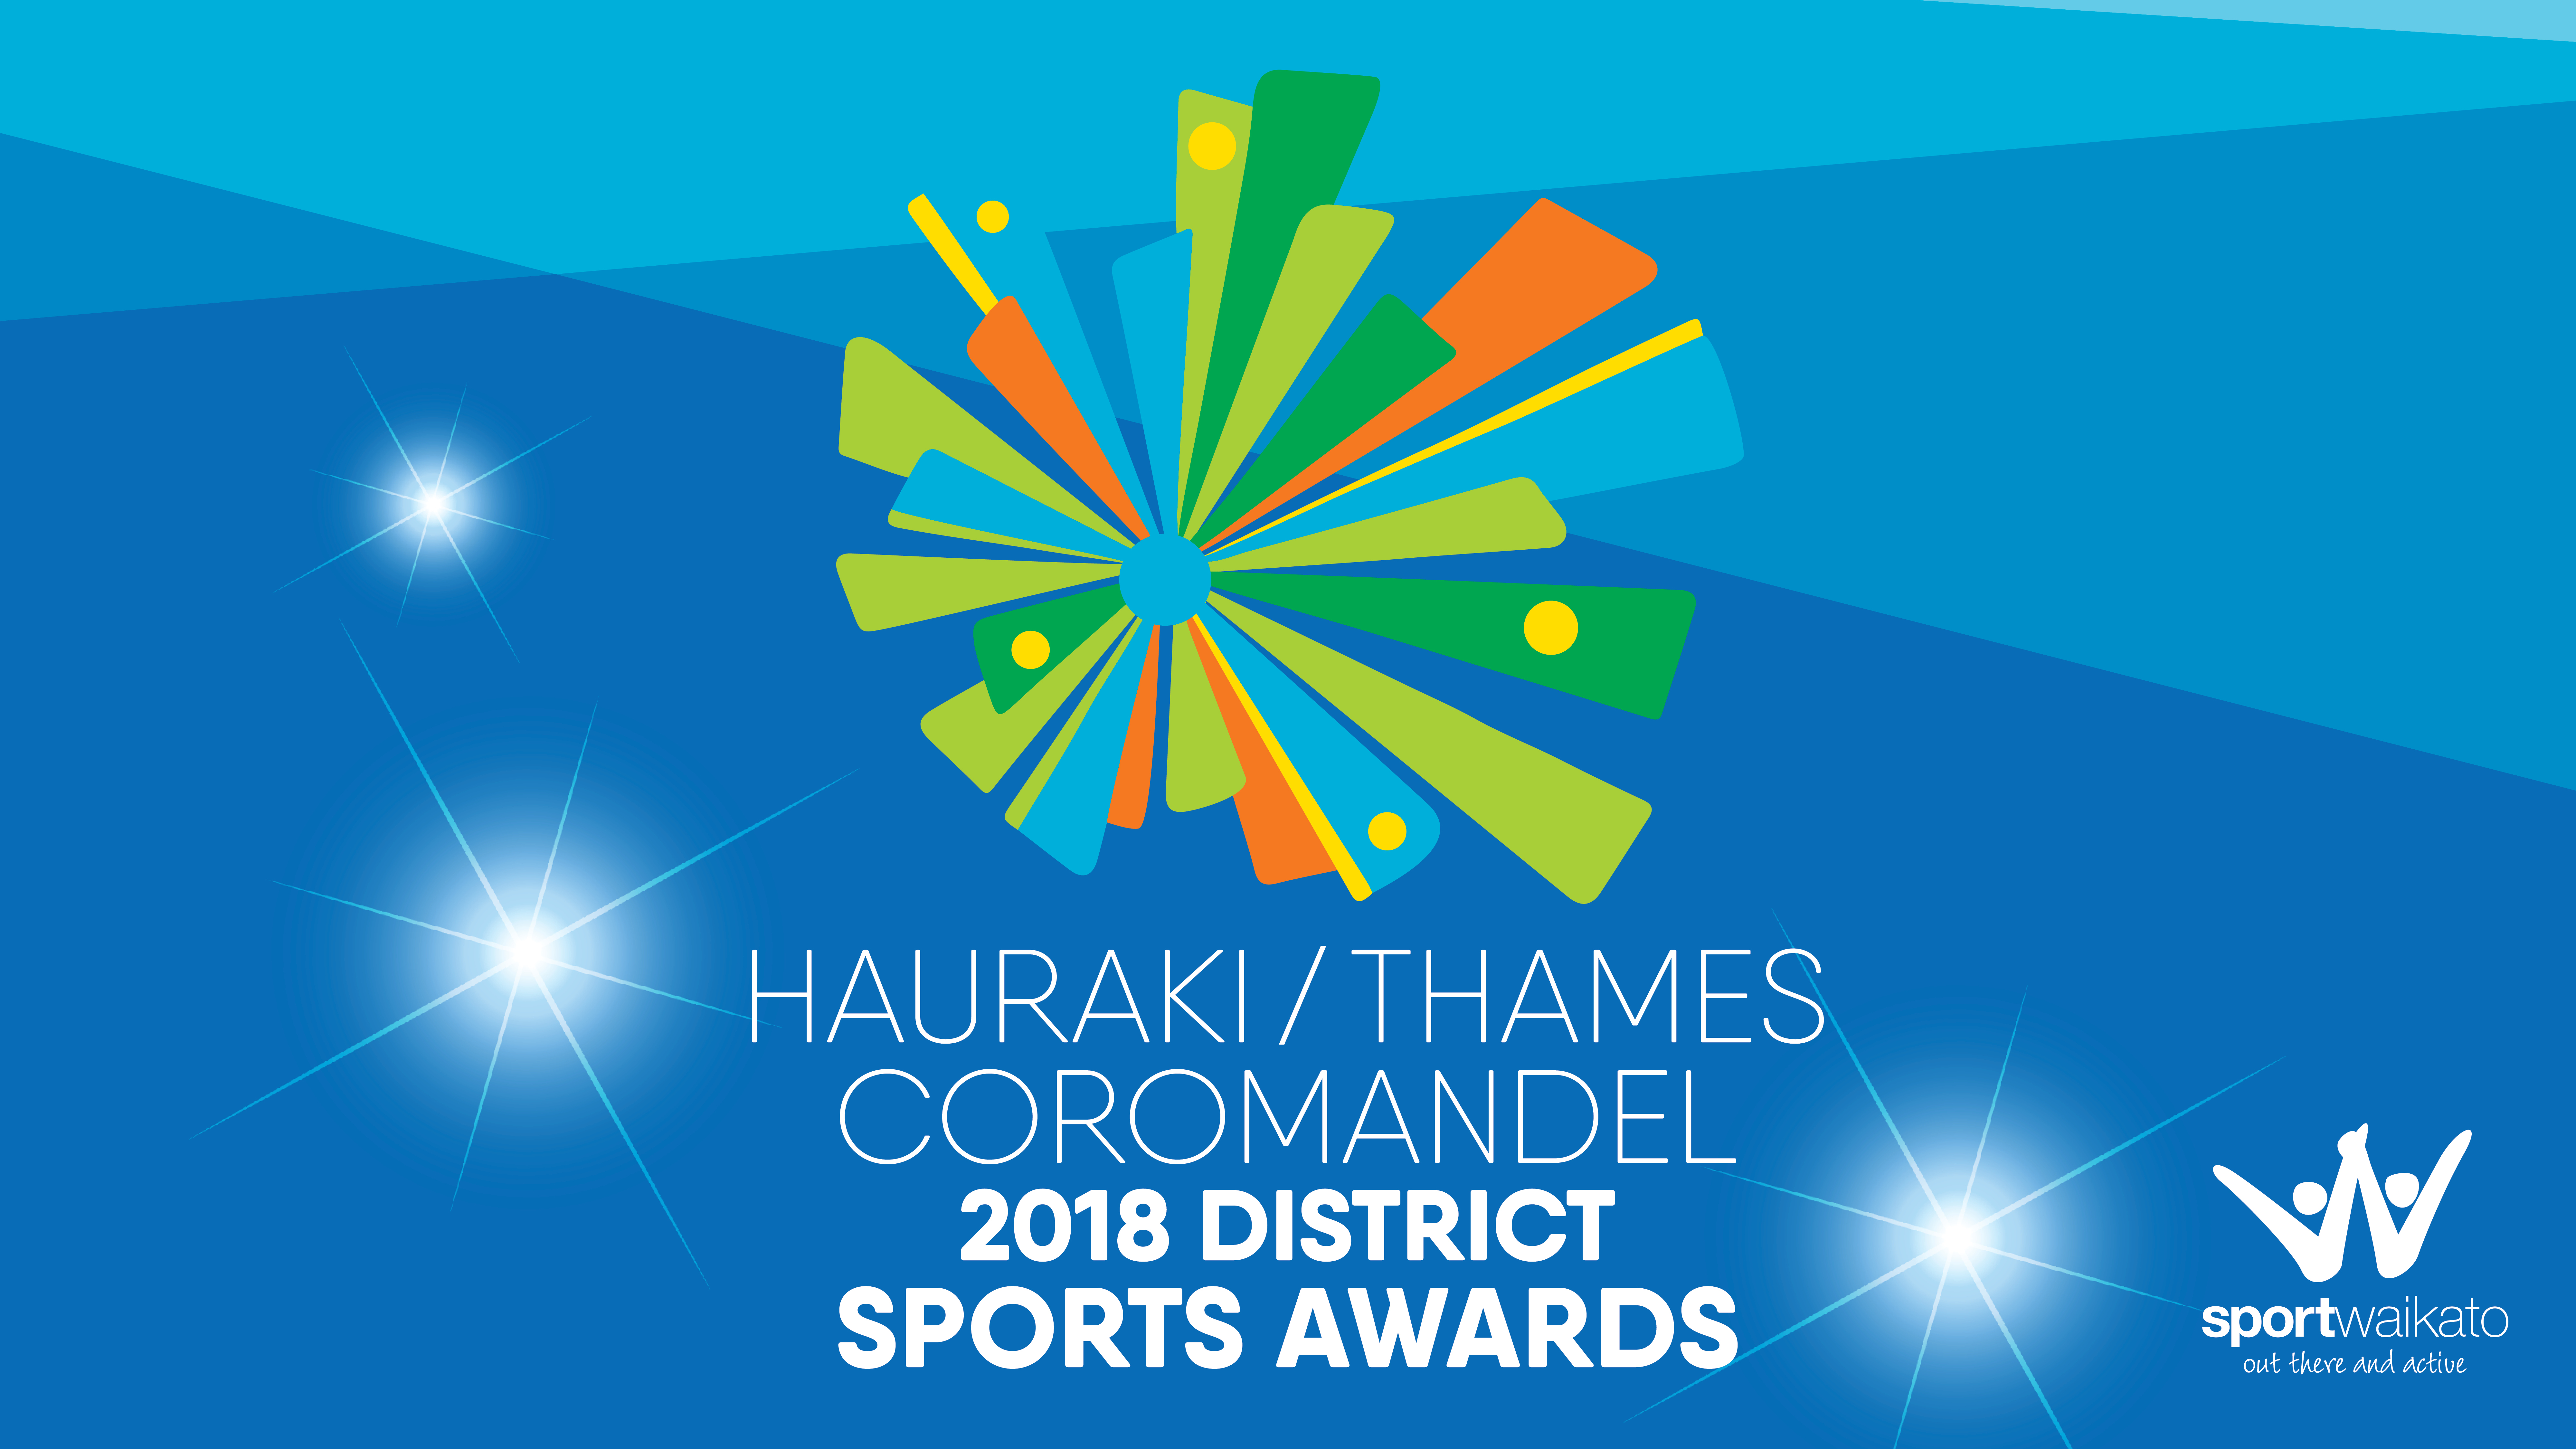 Hauraki/Thames-Coromandel District Sports Awards nominations are in!